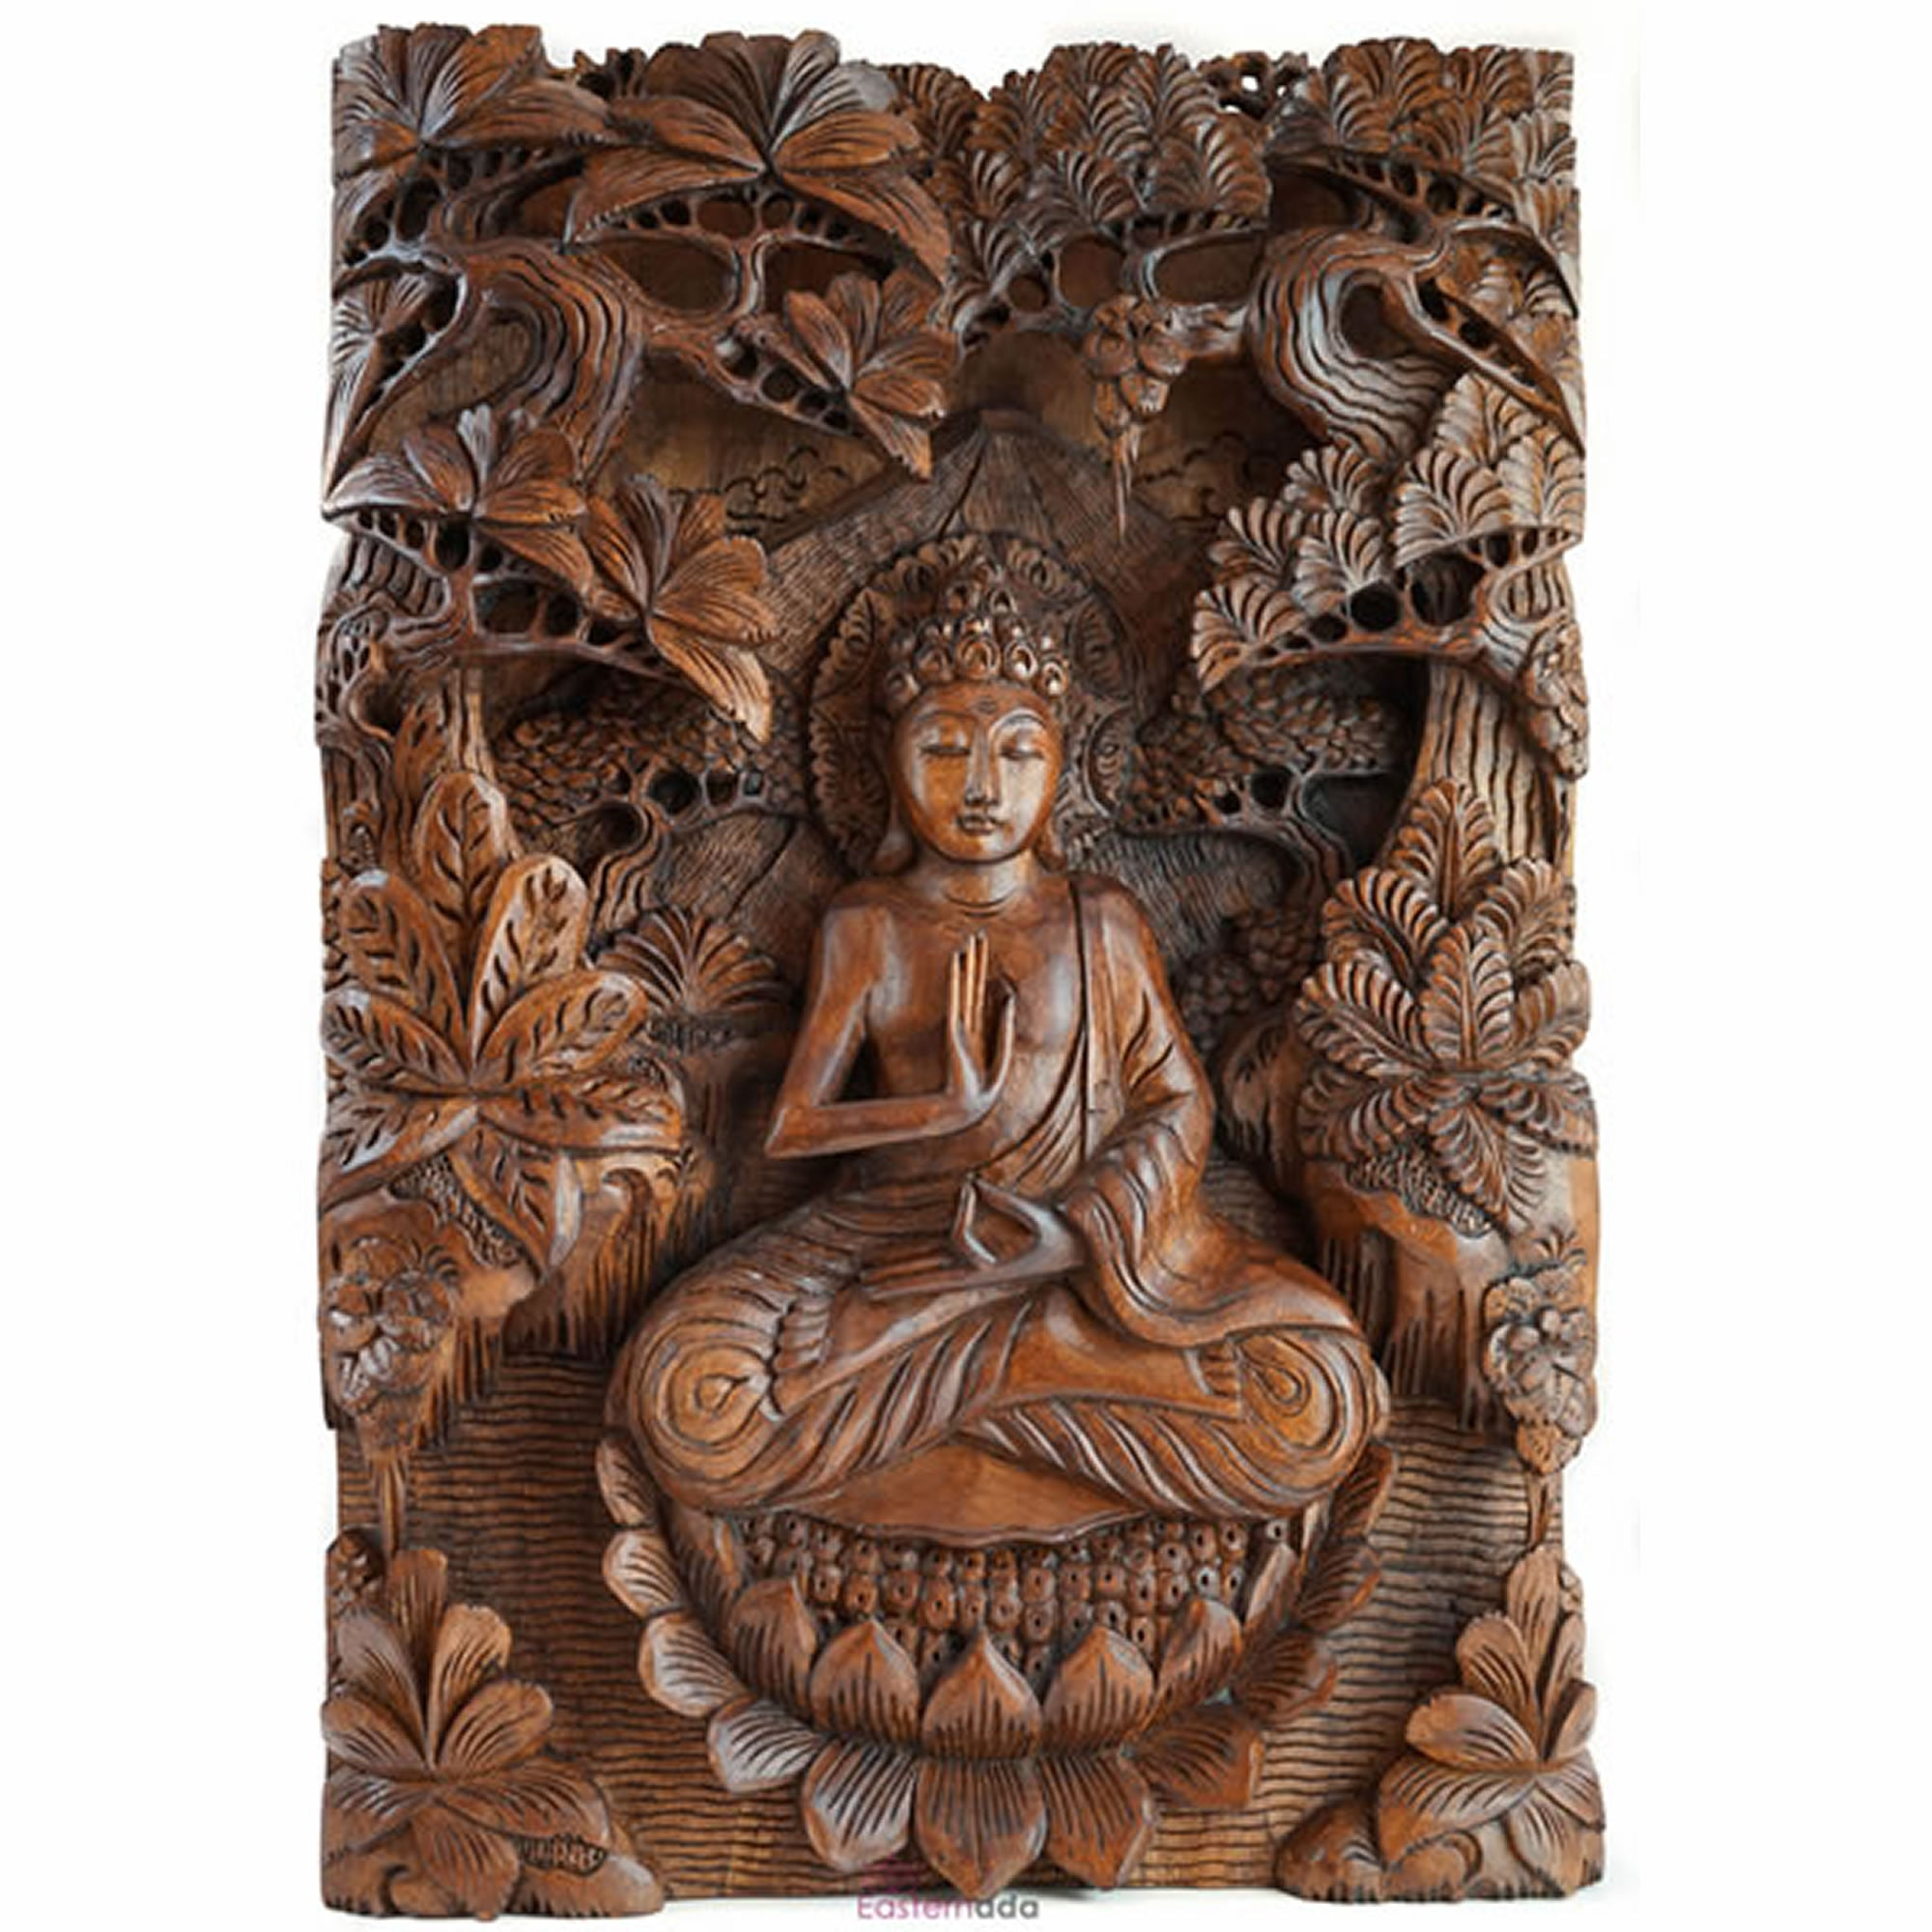 Buddha in Peace Carved Wooden Decorative Panel Sculpture Art - Easternada